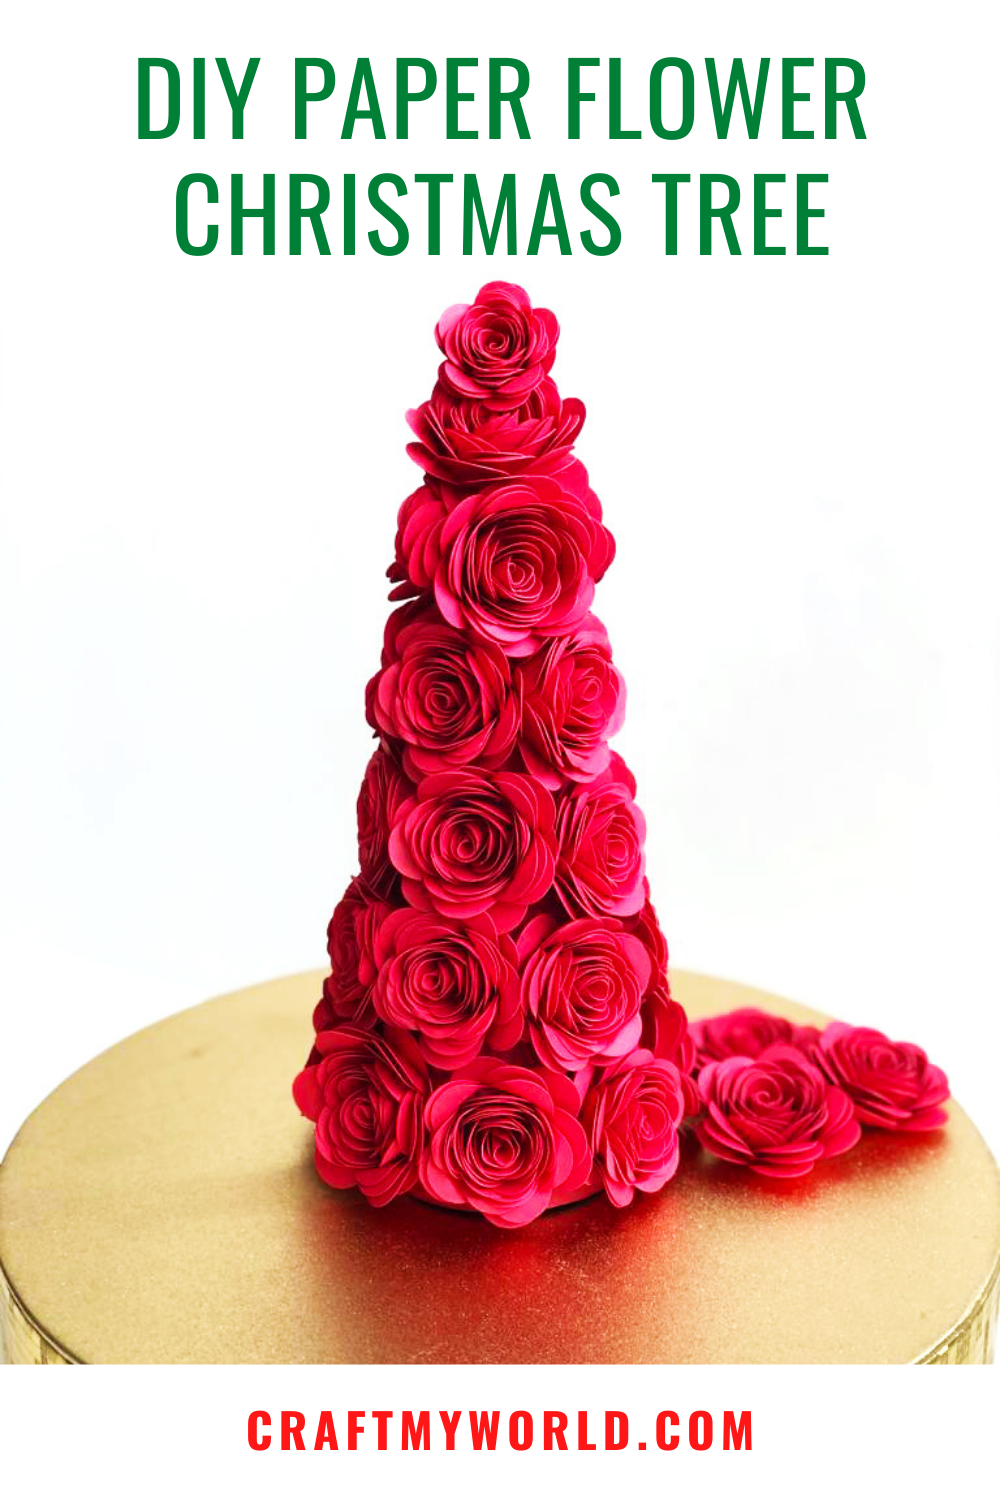 DIY paper flower Christmas tree cone